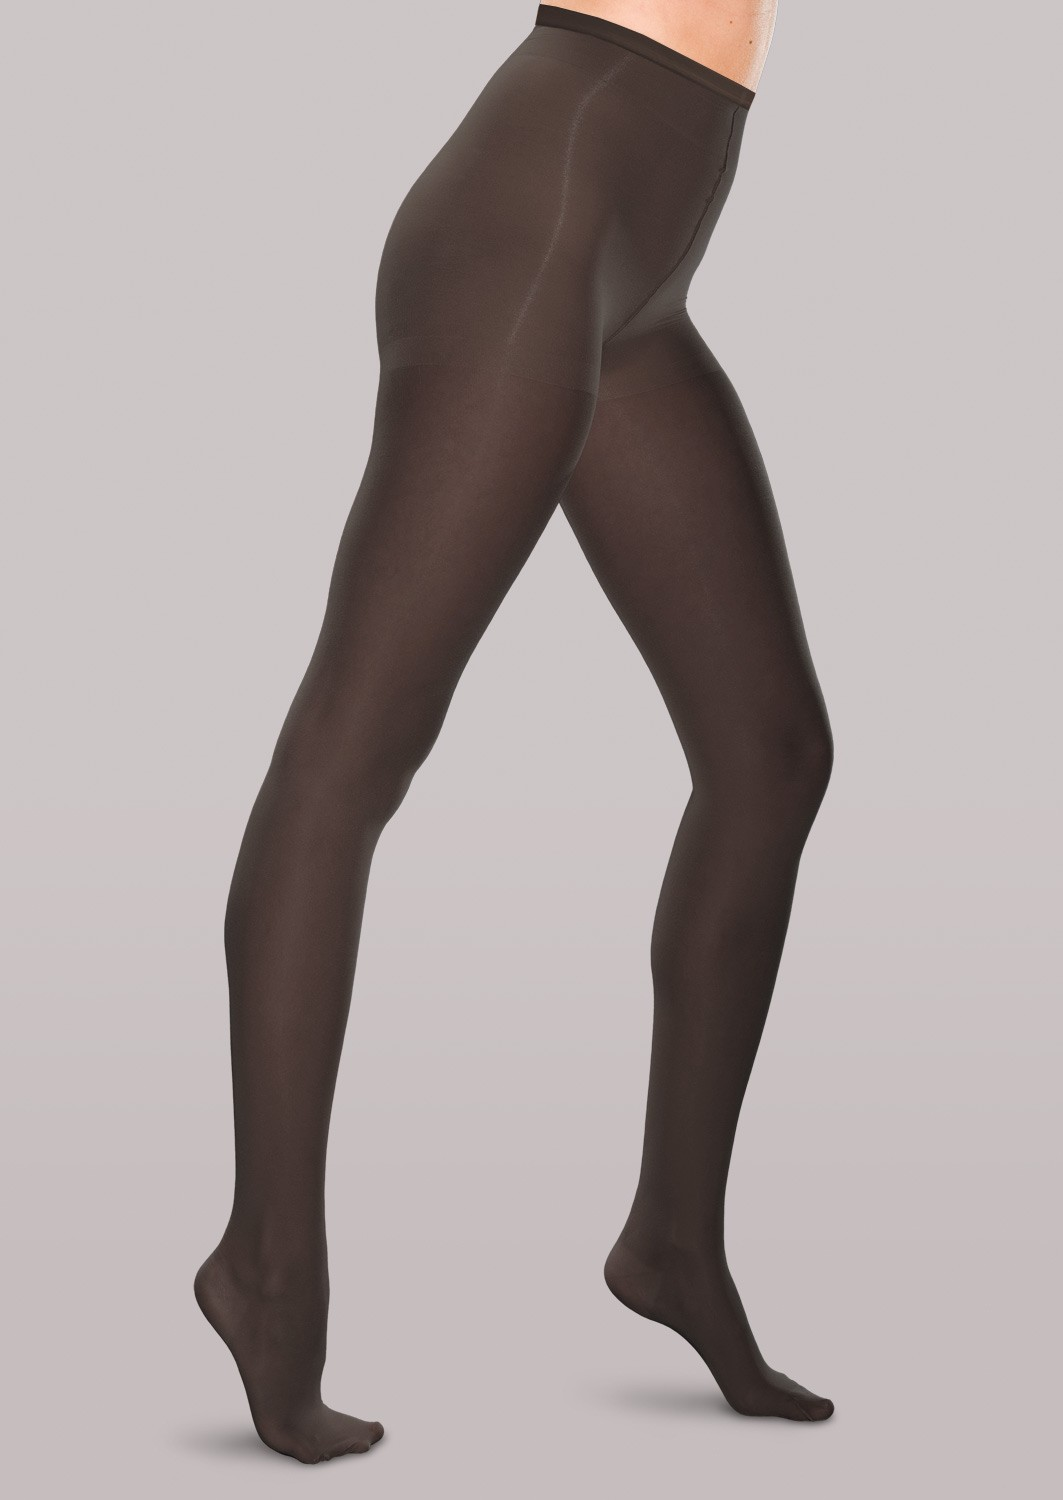 Womens Mild Support Sheer Pantyhose  Great Pair Store-1053